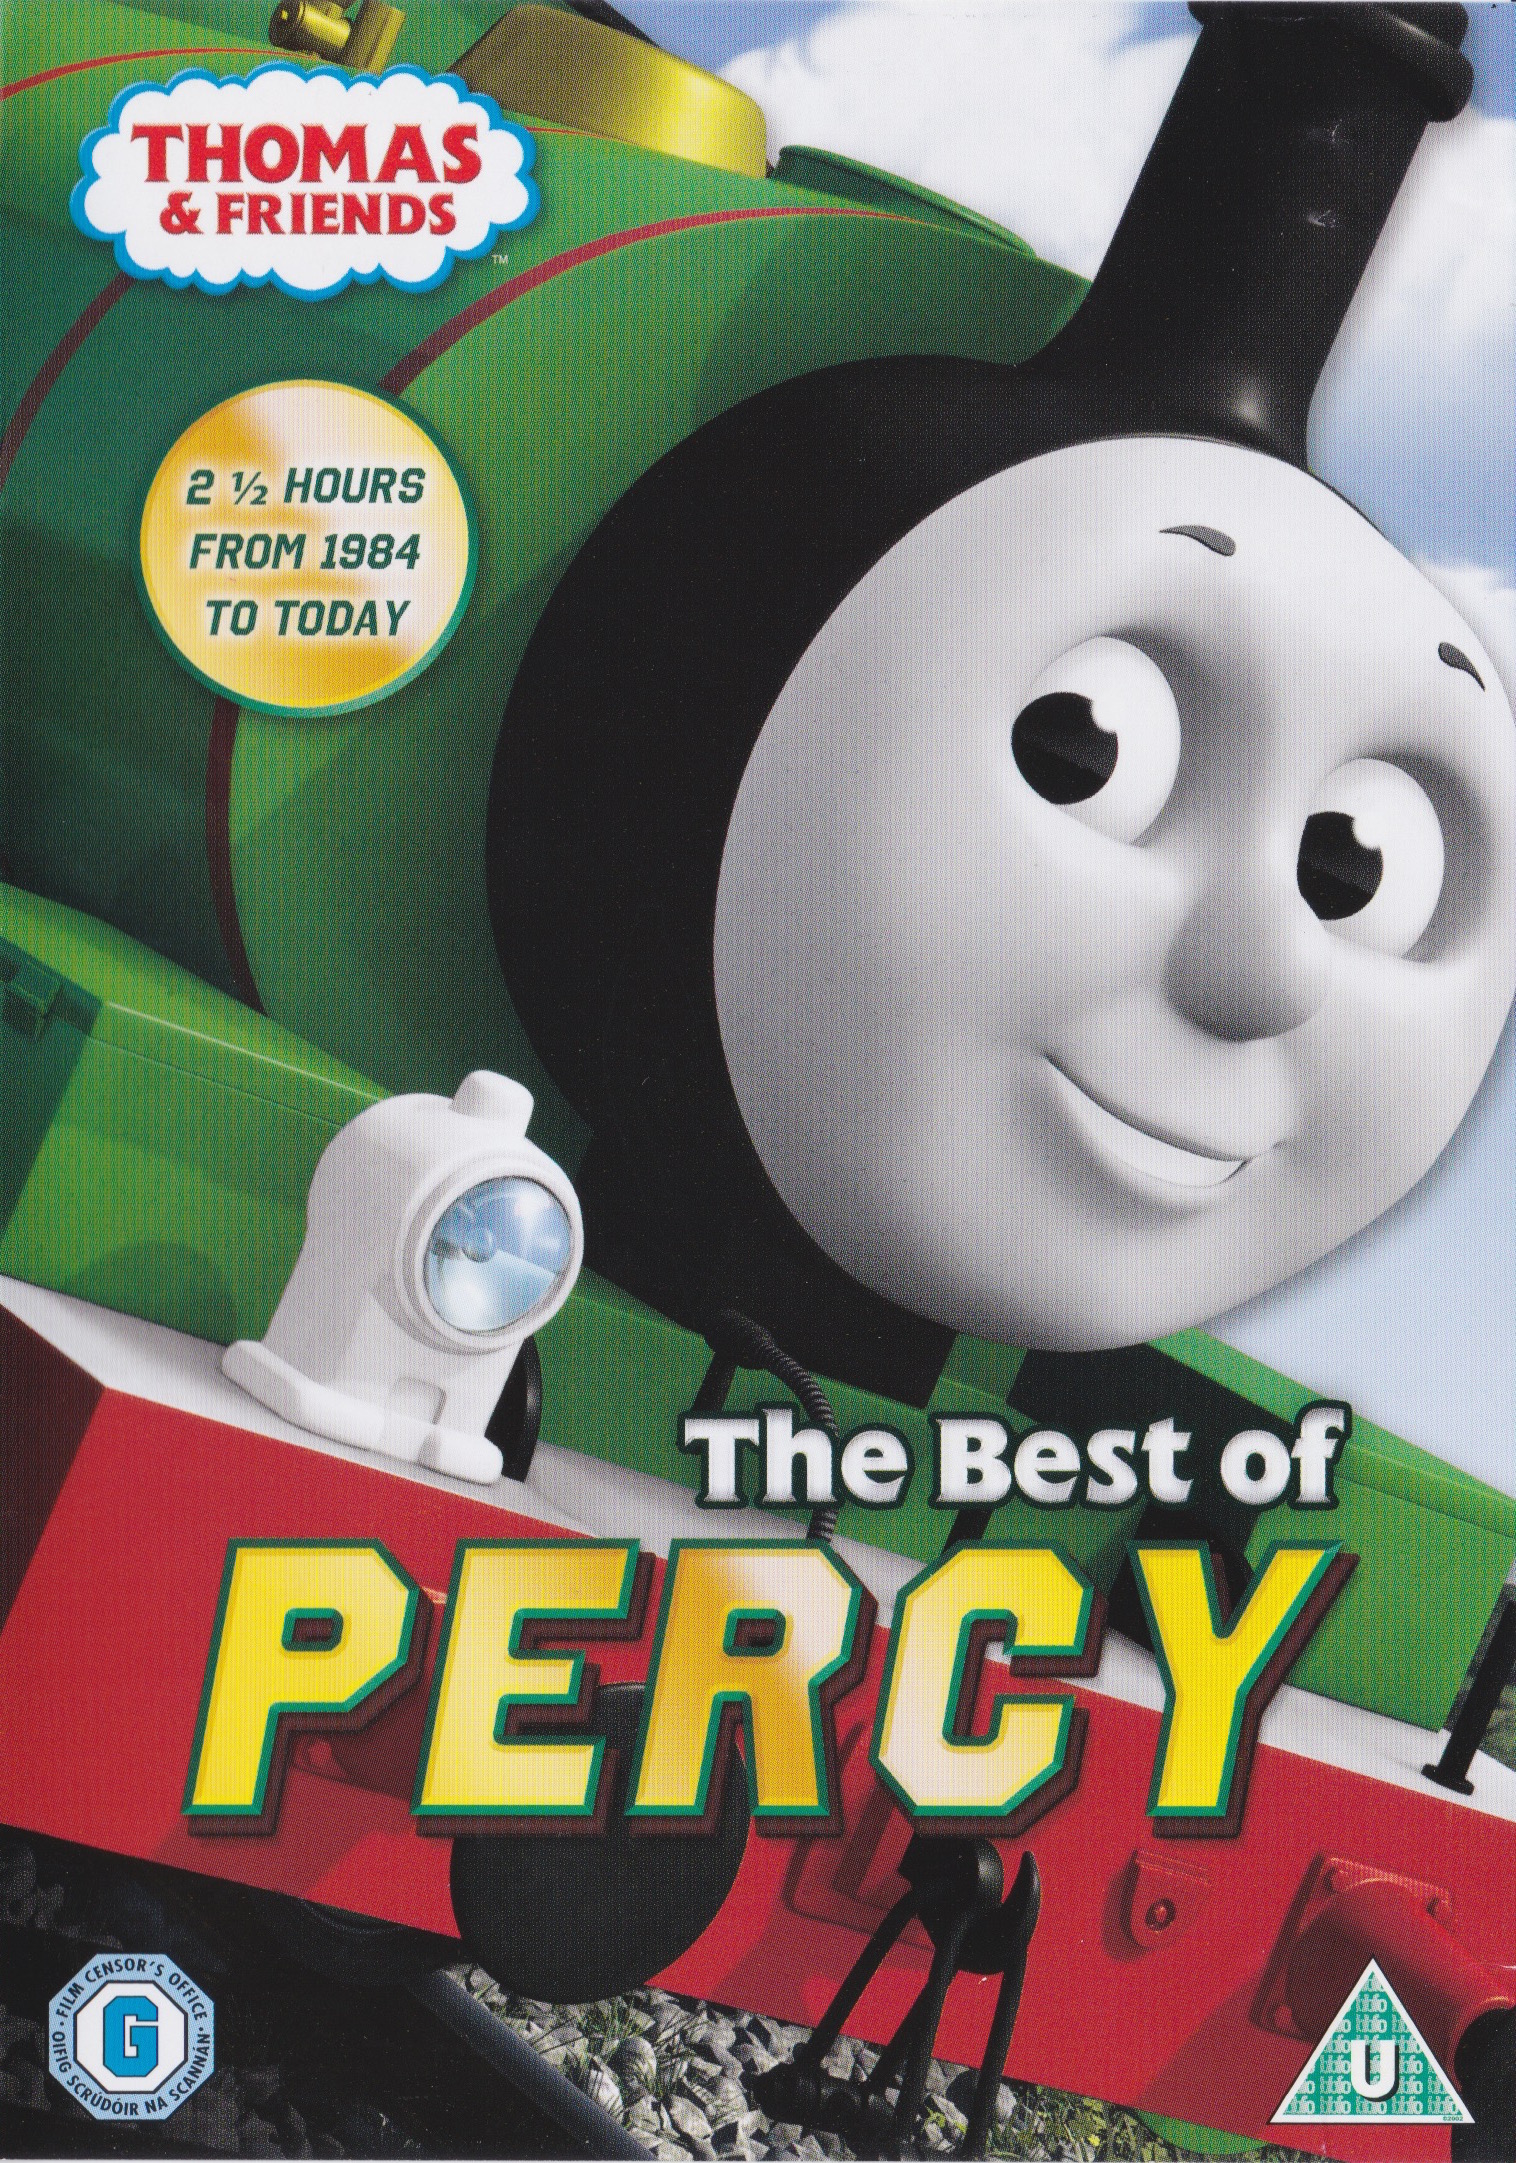 The Best of Percy